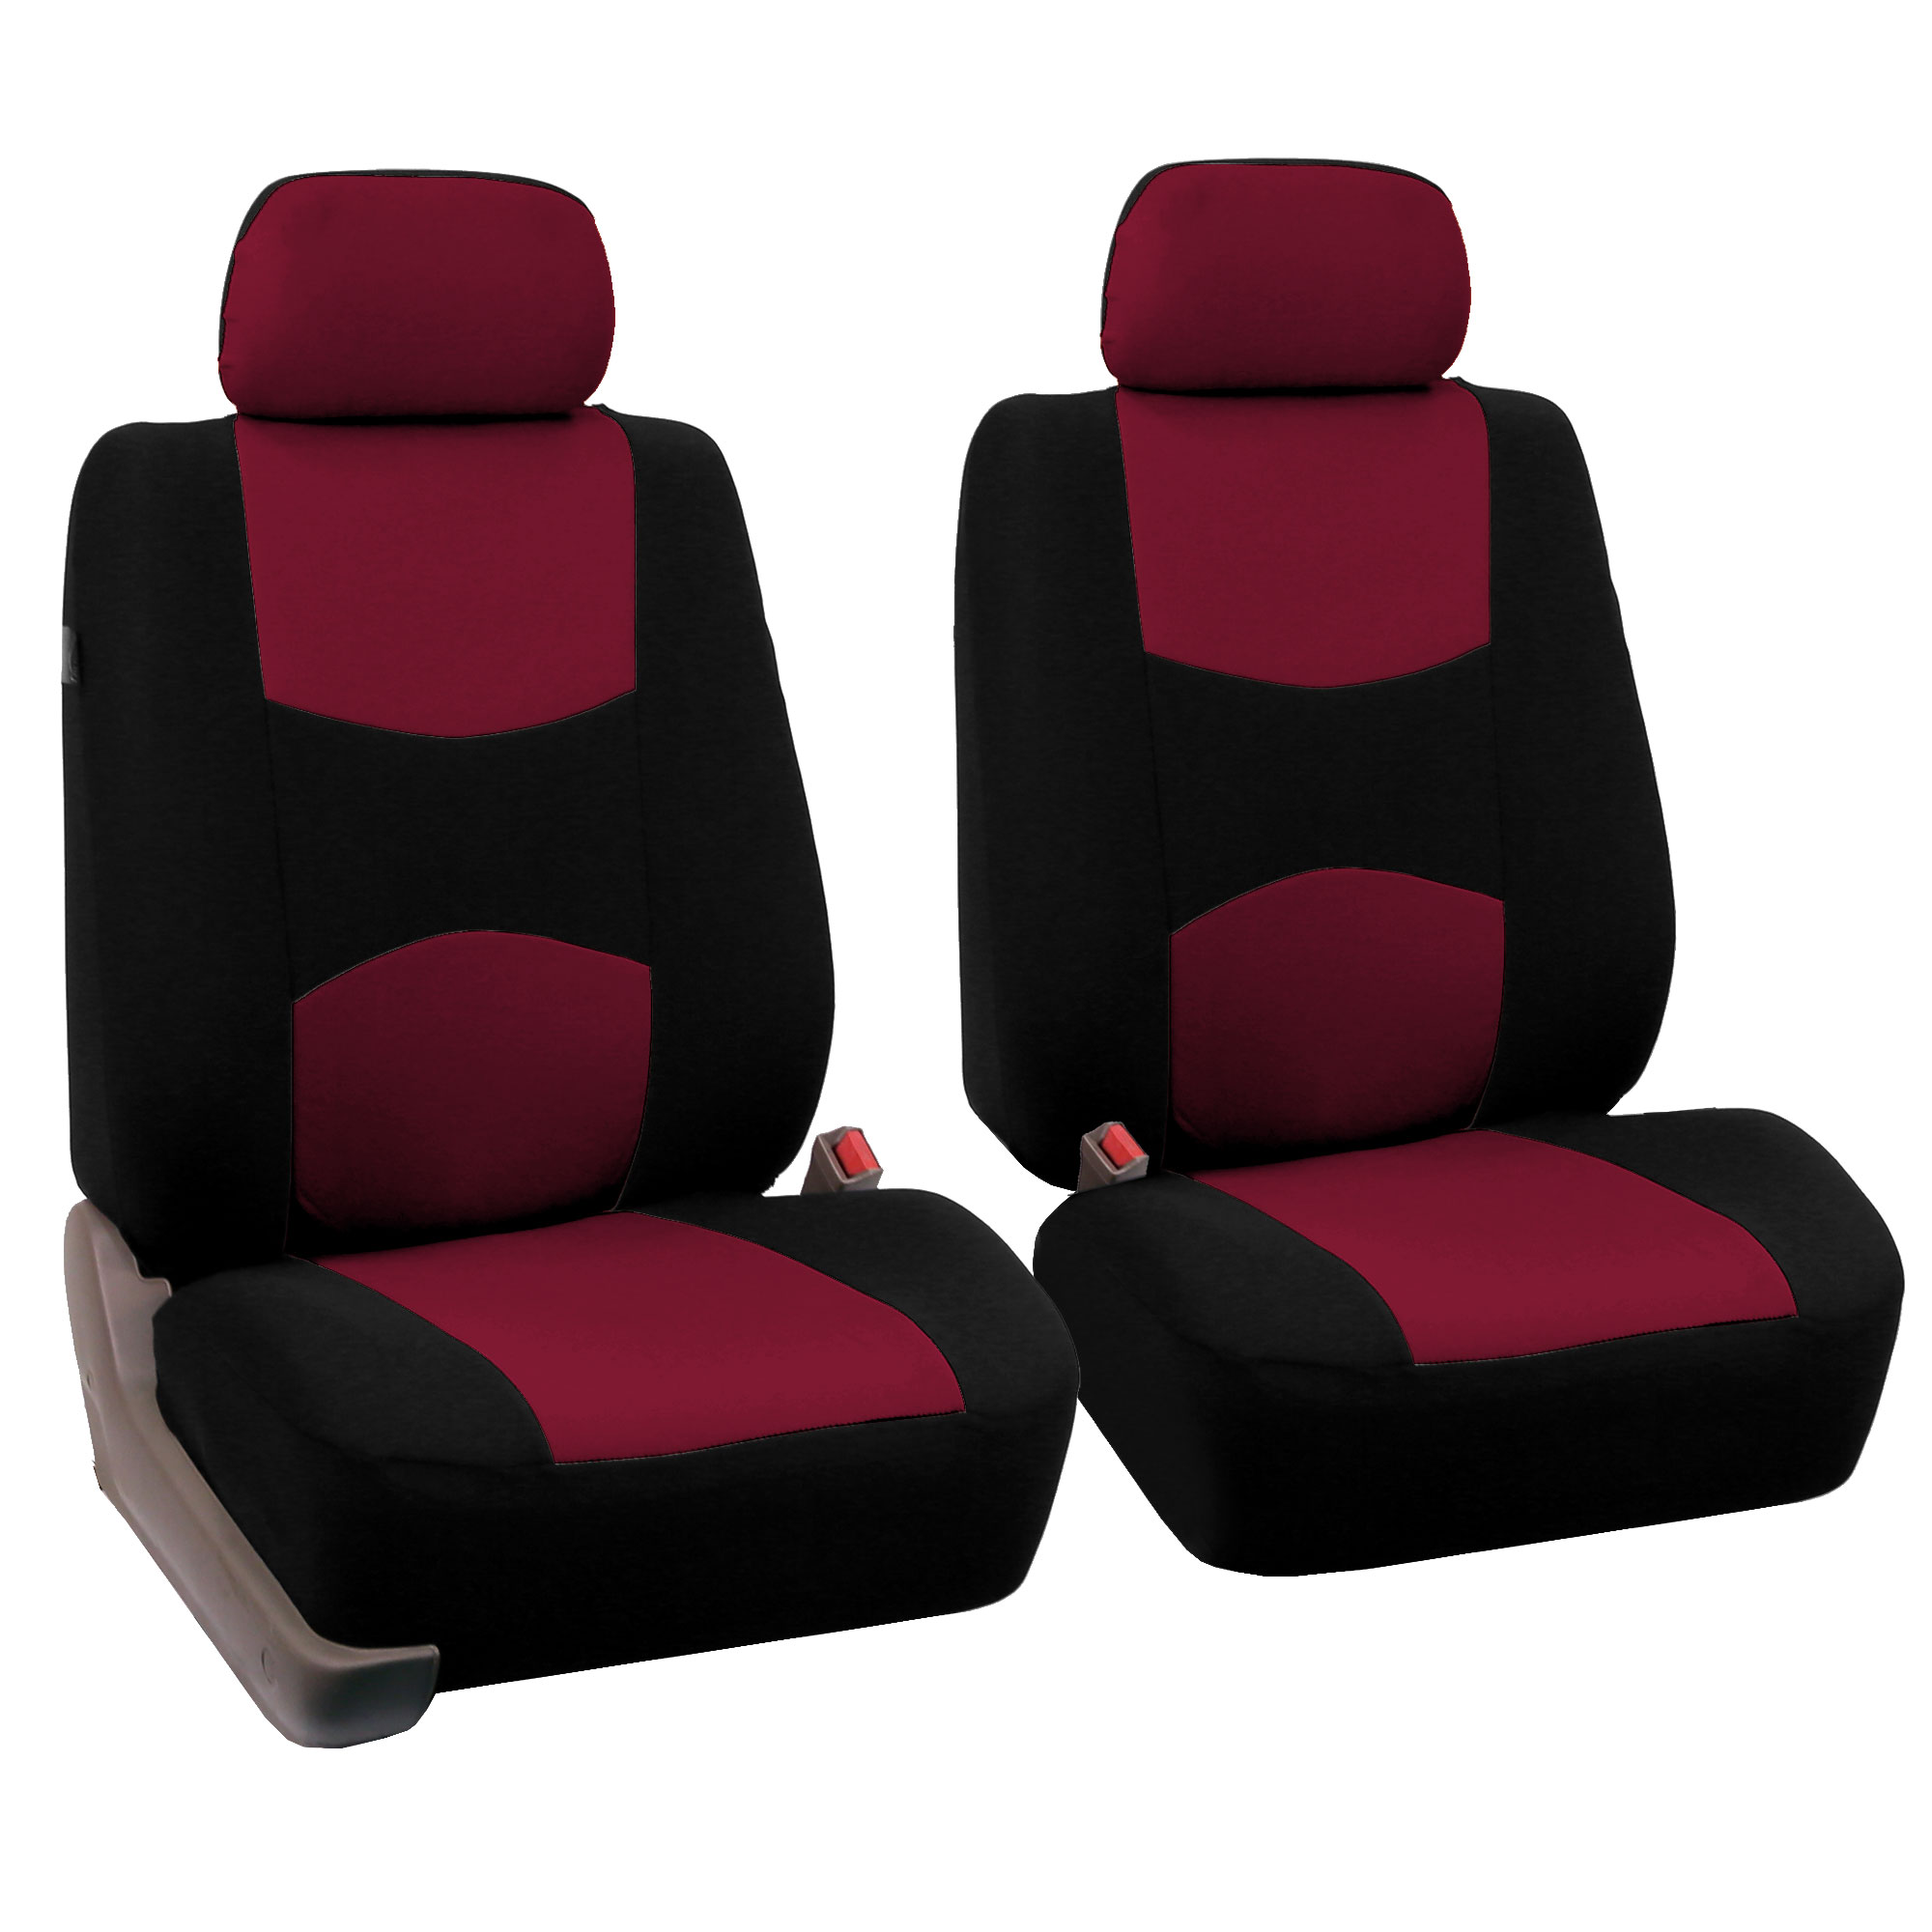 Fh Group Universal Flat Cloth Fabric Full Set Car Seat Cover Burgundy And Black